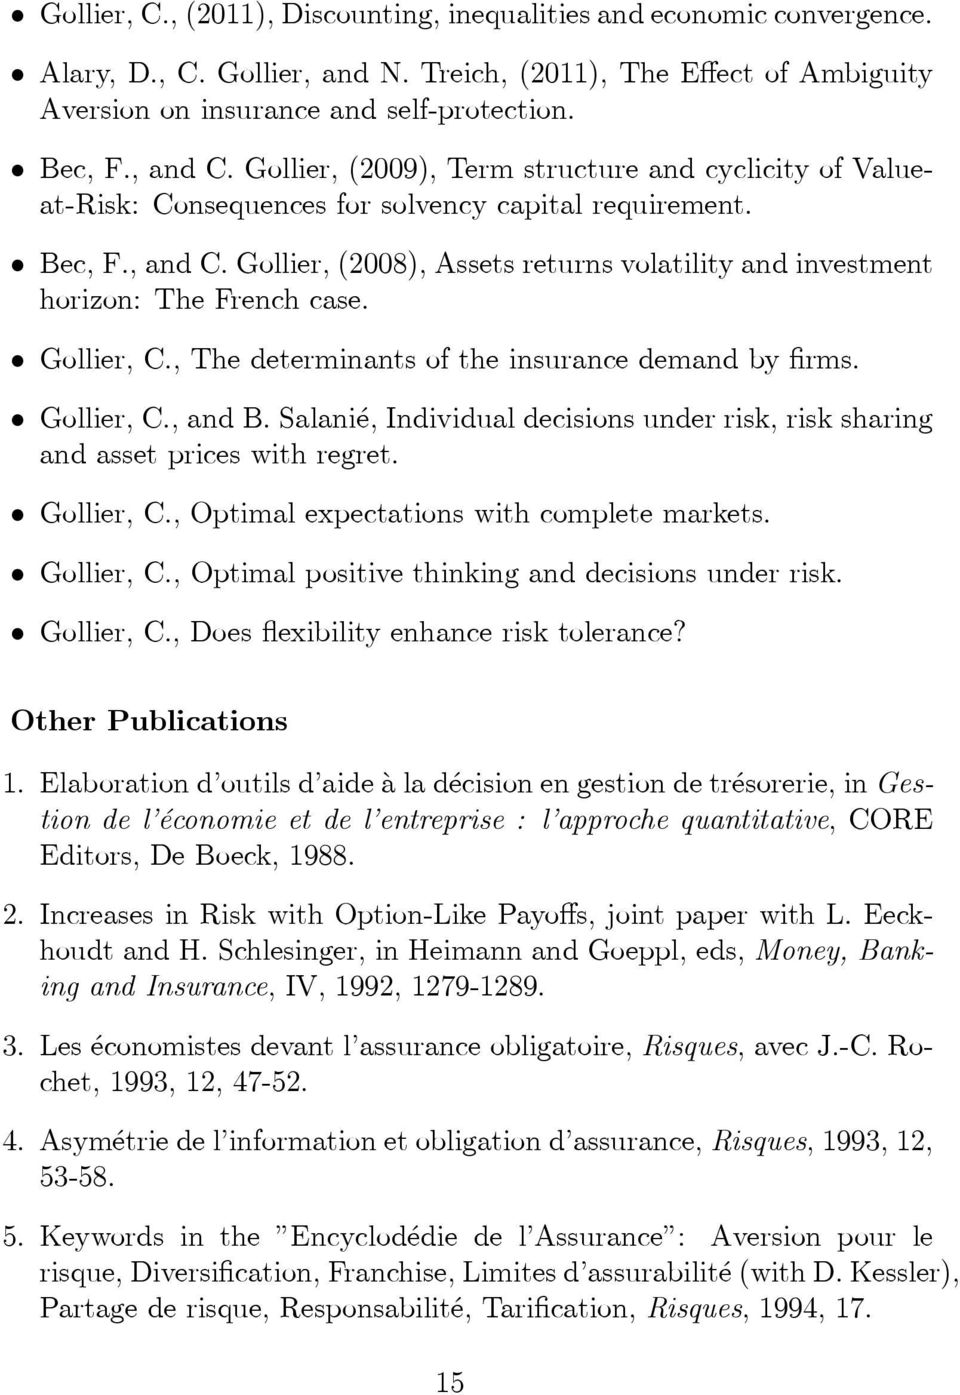 Gollier, C., The determinants of the insurance demand by firms. Gollier, C., and B. Salanié, Individual decisions under risk, risk sharing and asset prices with regret. Gollier, C., Optimal expectations with complete markets.